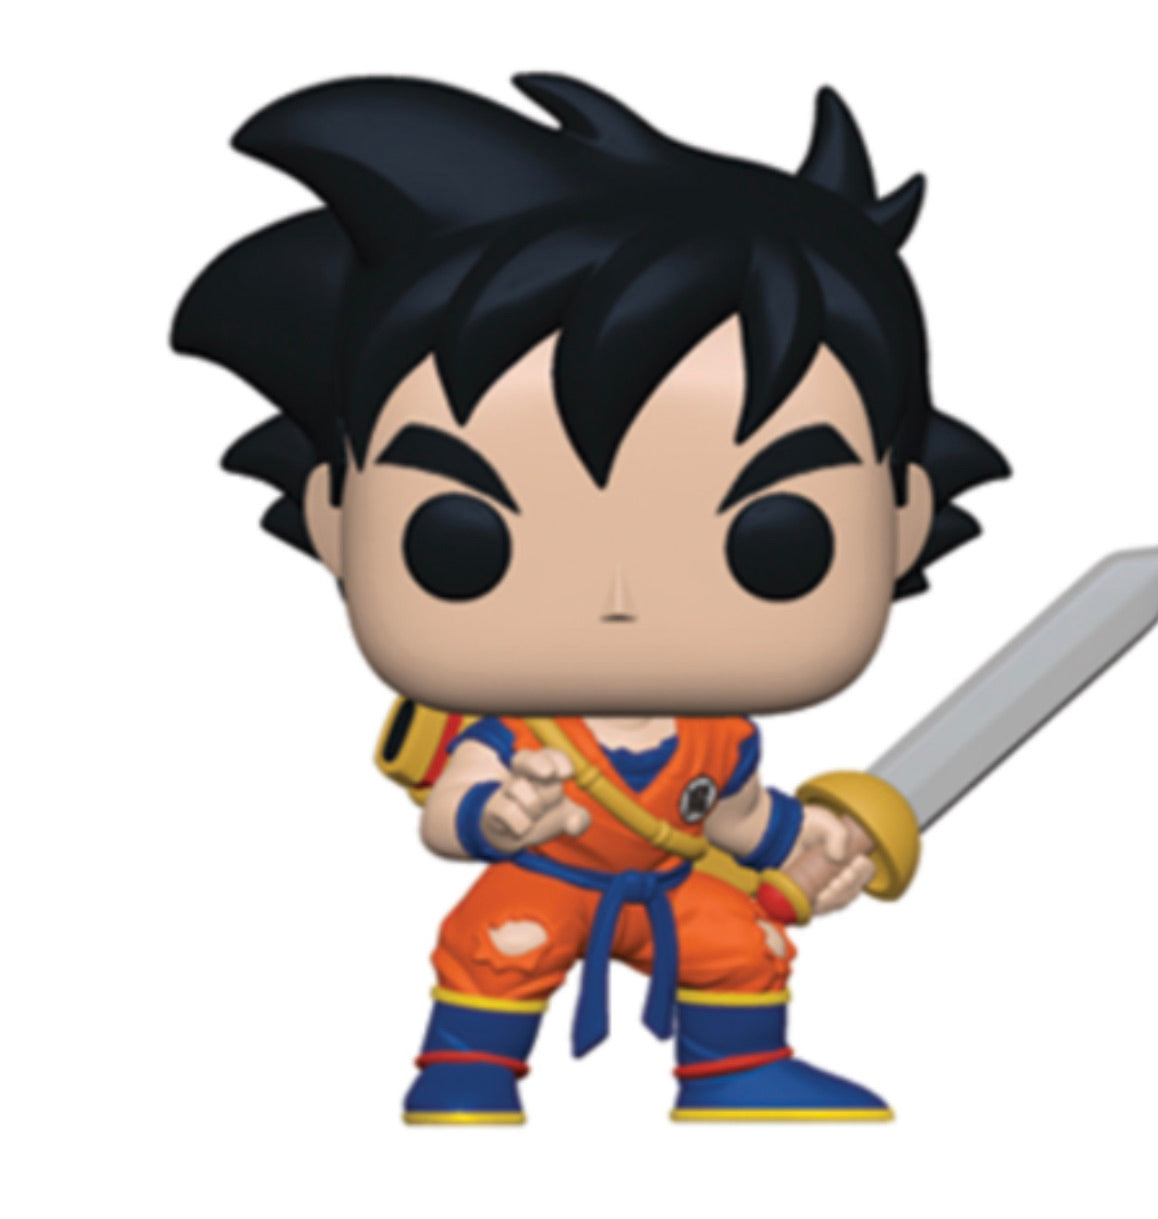 DRAGON BALL Z FUNKO POP! GOHAN (WITH SWORD)GAMESTOP EXCLUSIVE (PRE-ORDER)